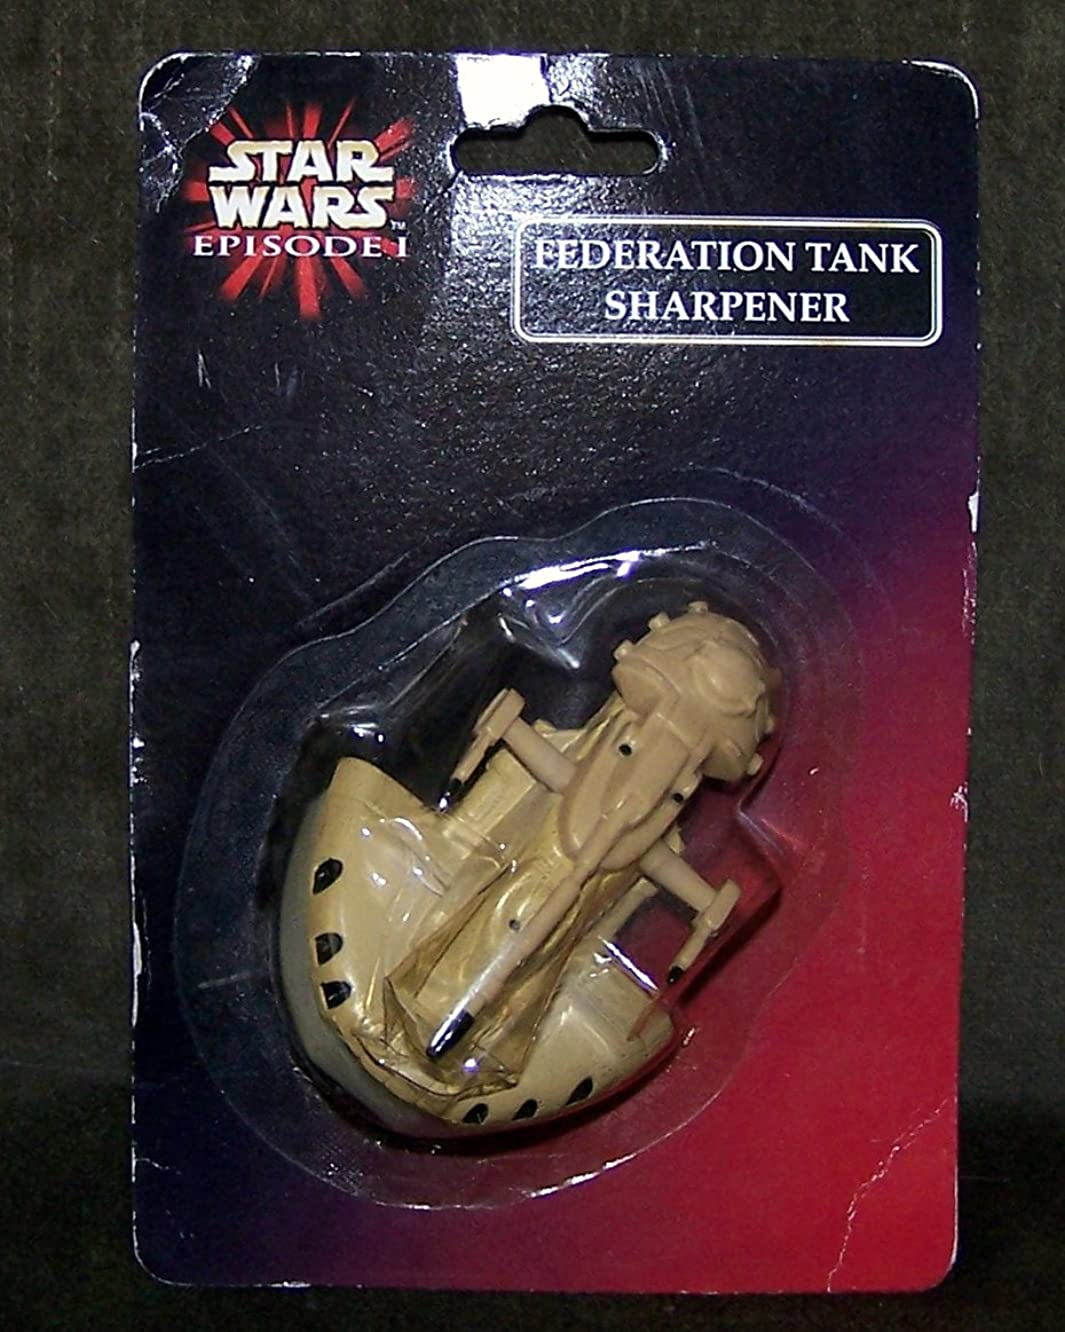 Stars Wars Episode 1 Federation Tank Pencil Sharpener